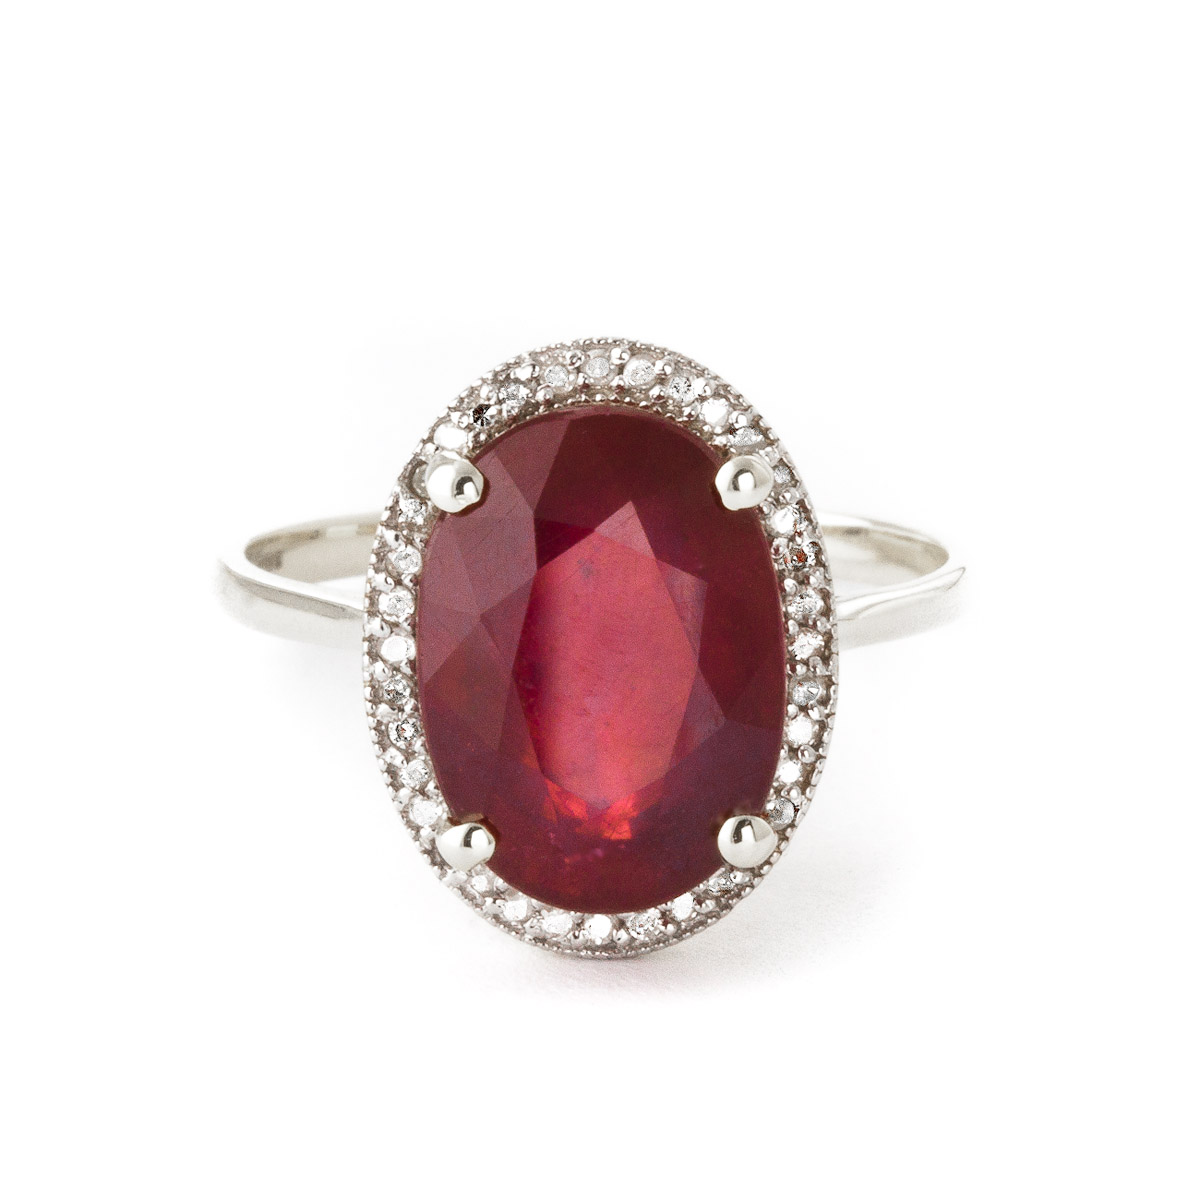 Ruby Halo Ring 7.93 ctw in 18ct White Gold